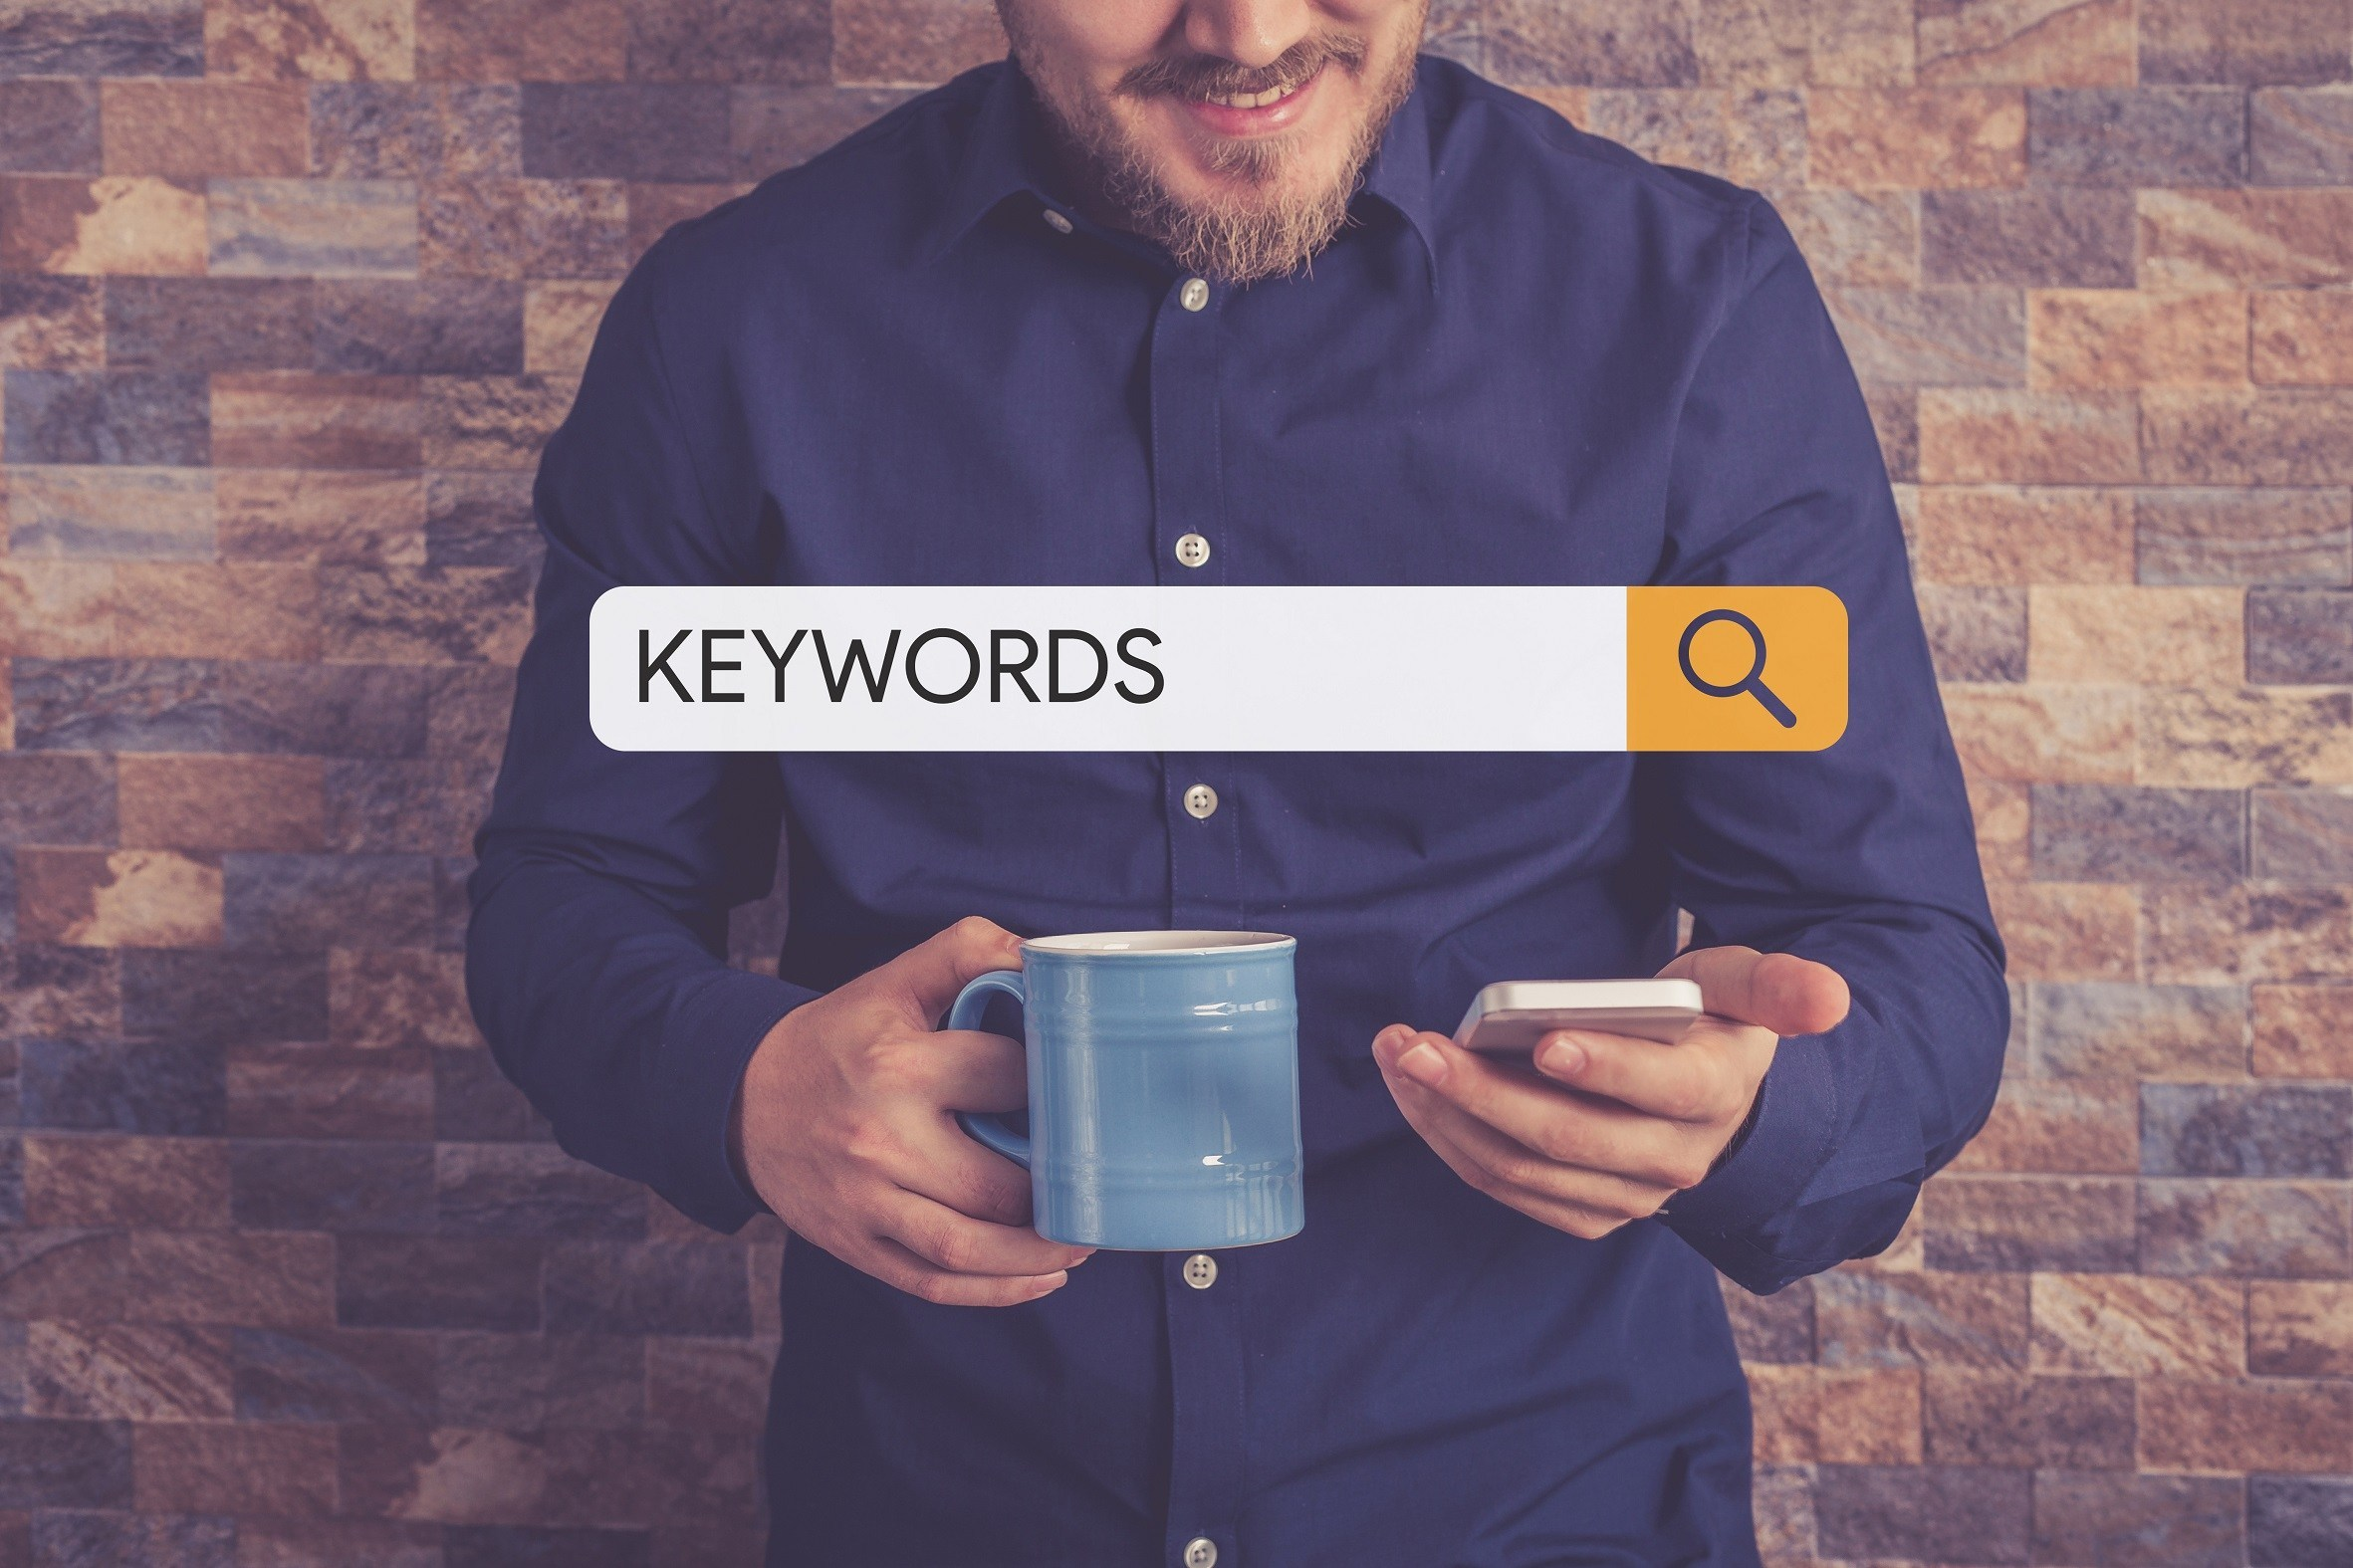 SEO Tool per una Keyword Research completa ed efficace